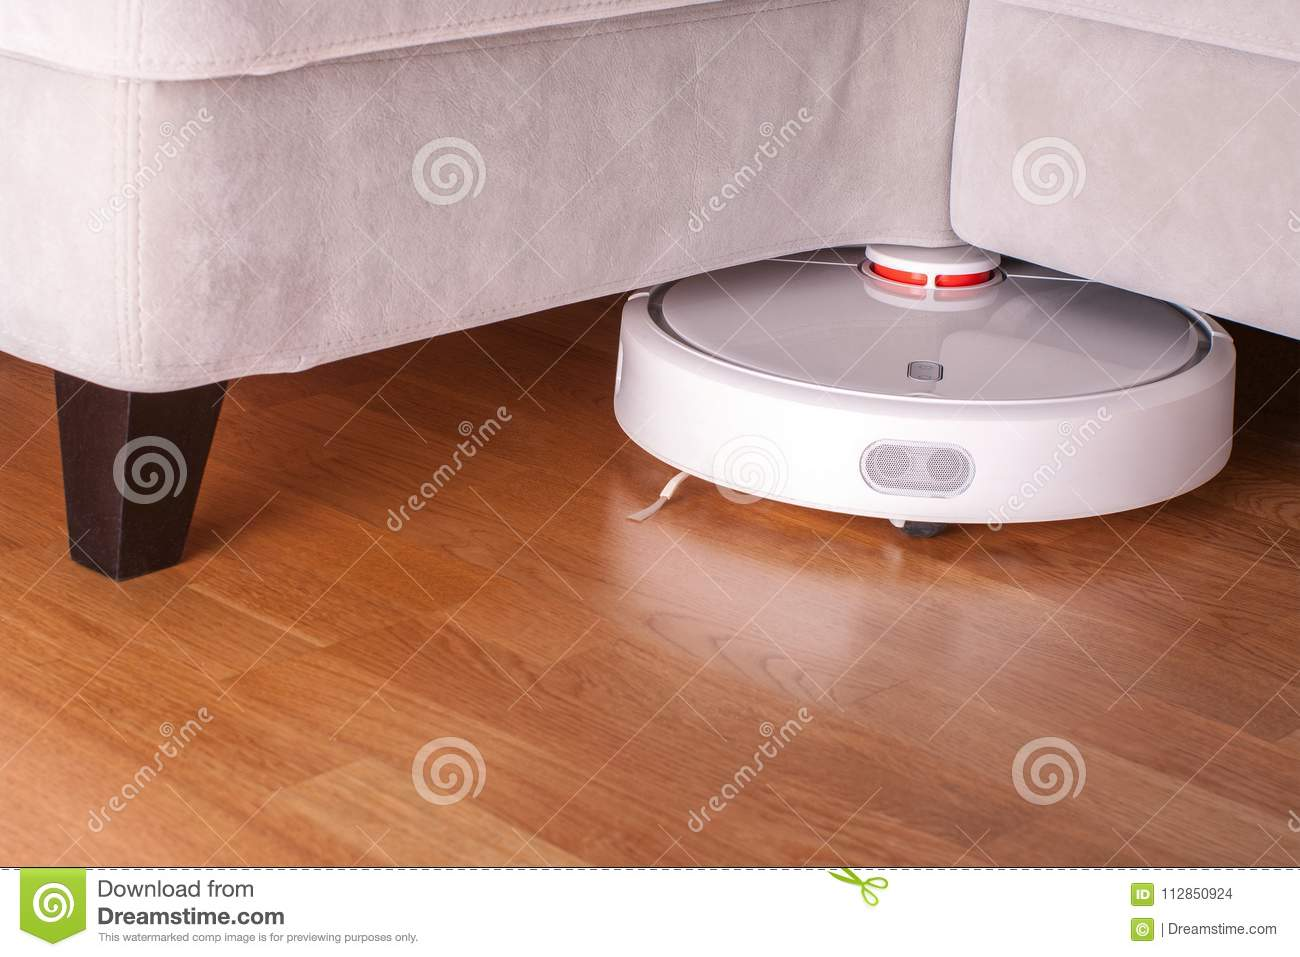 Sofa Vacuum Cleaner Brush Robotic Vacuum Cleaner Runs Under Sofa In Room On Laminate Floor